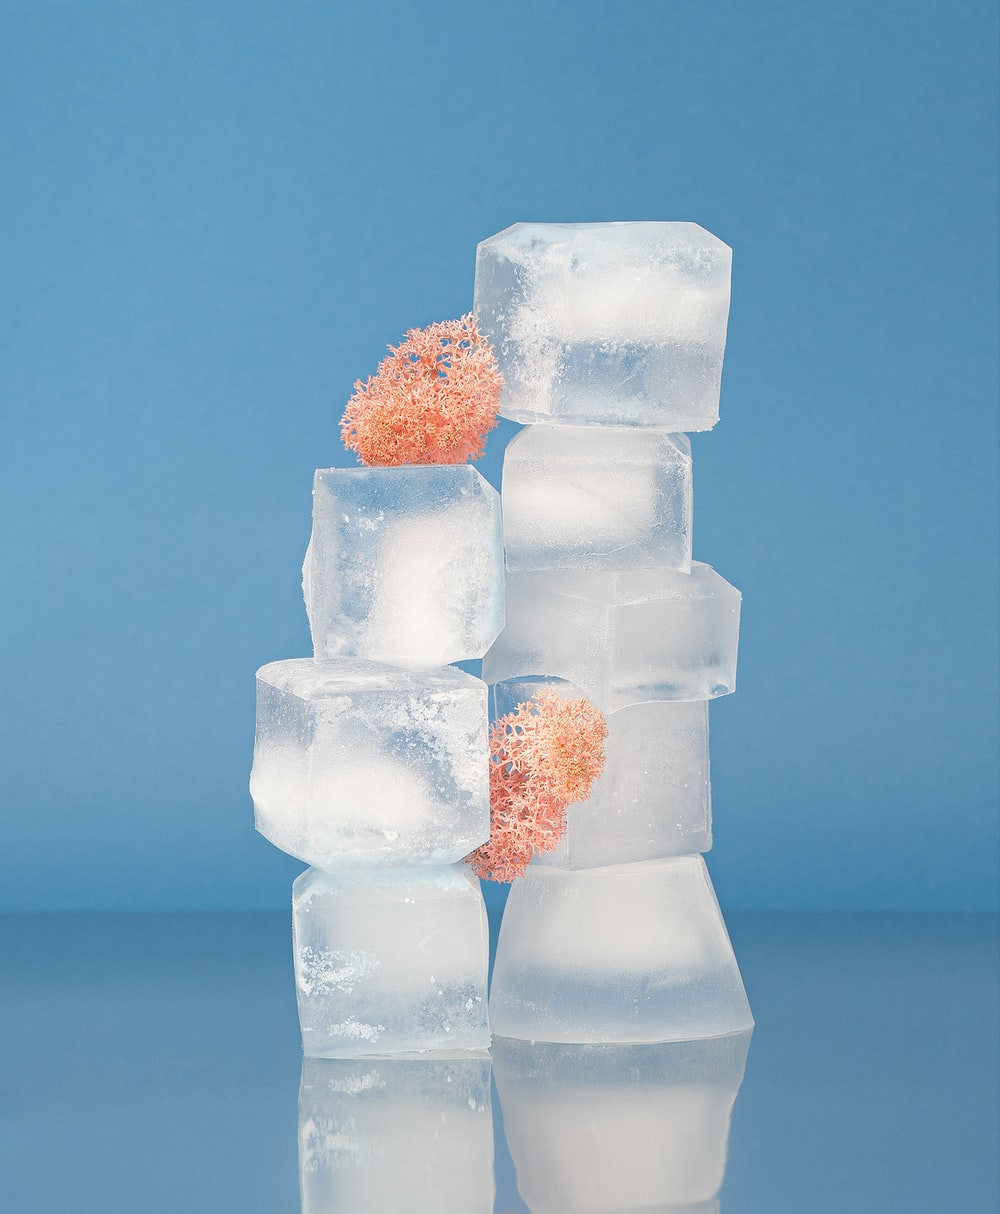 Ice Trays: 7 Cool Things We Can Do With Them